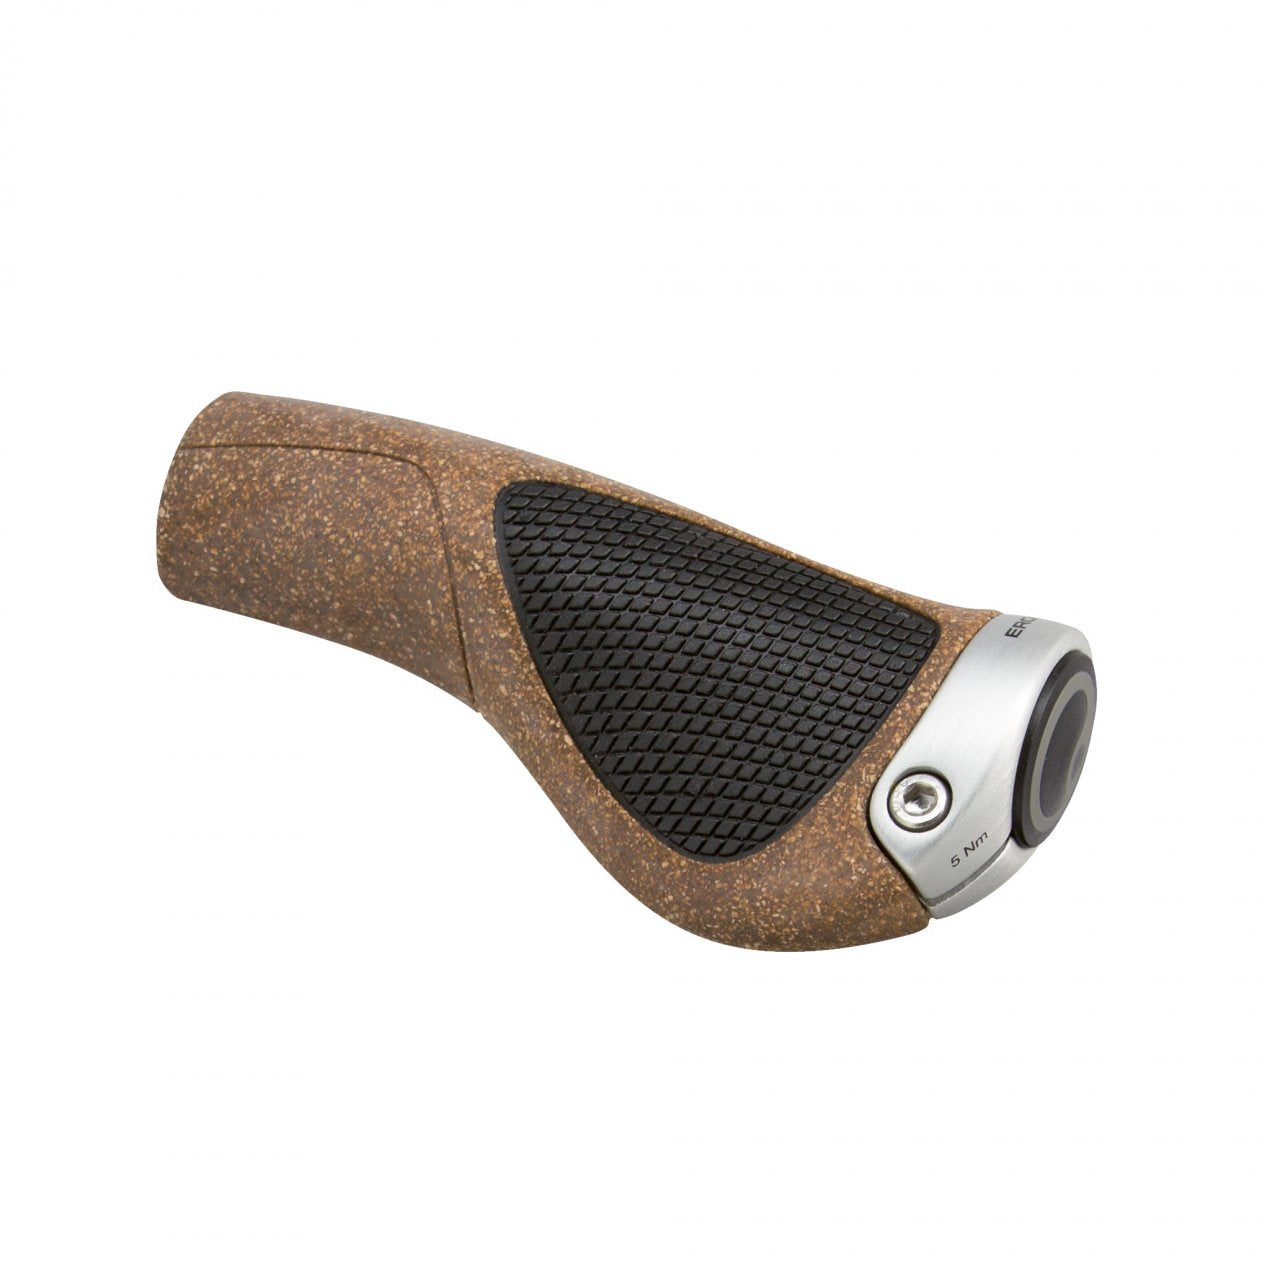 Ergon GP1-S Small Bio Cork Grips